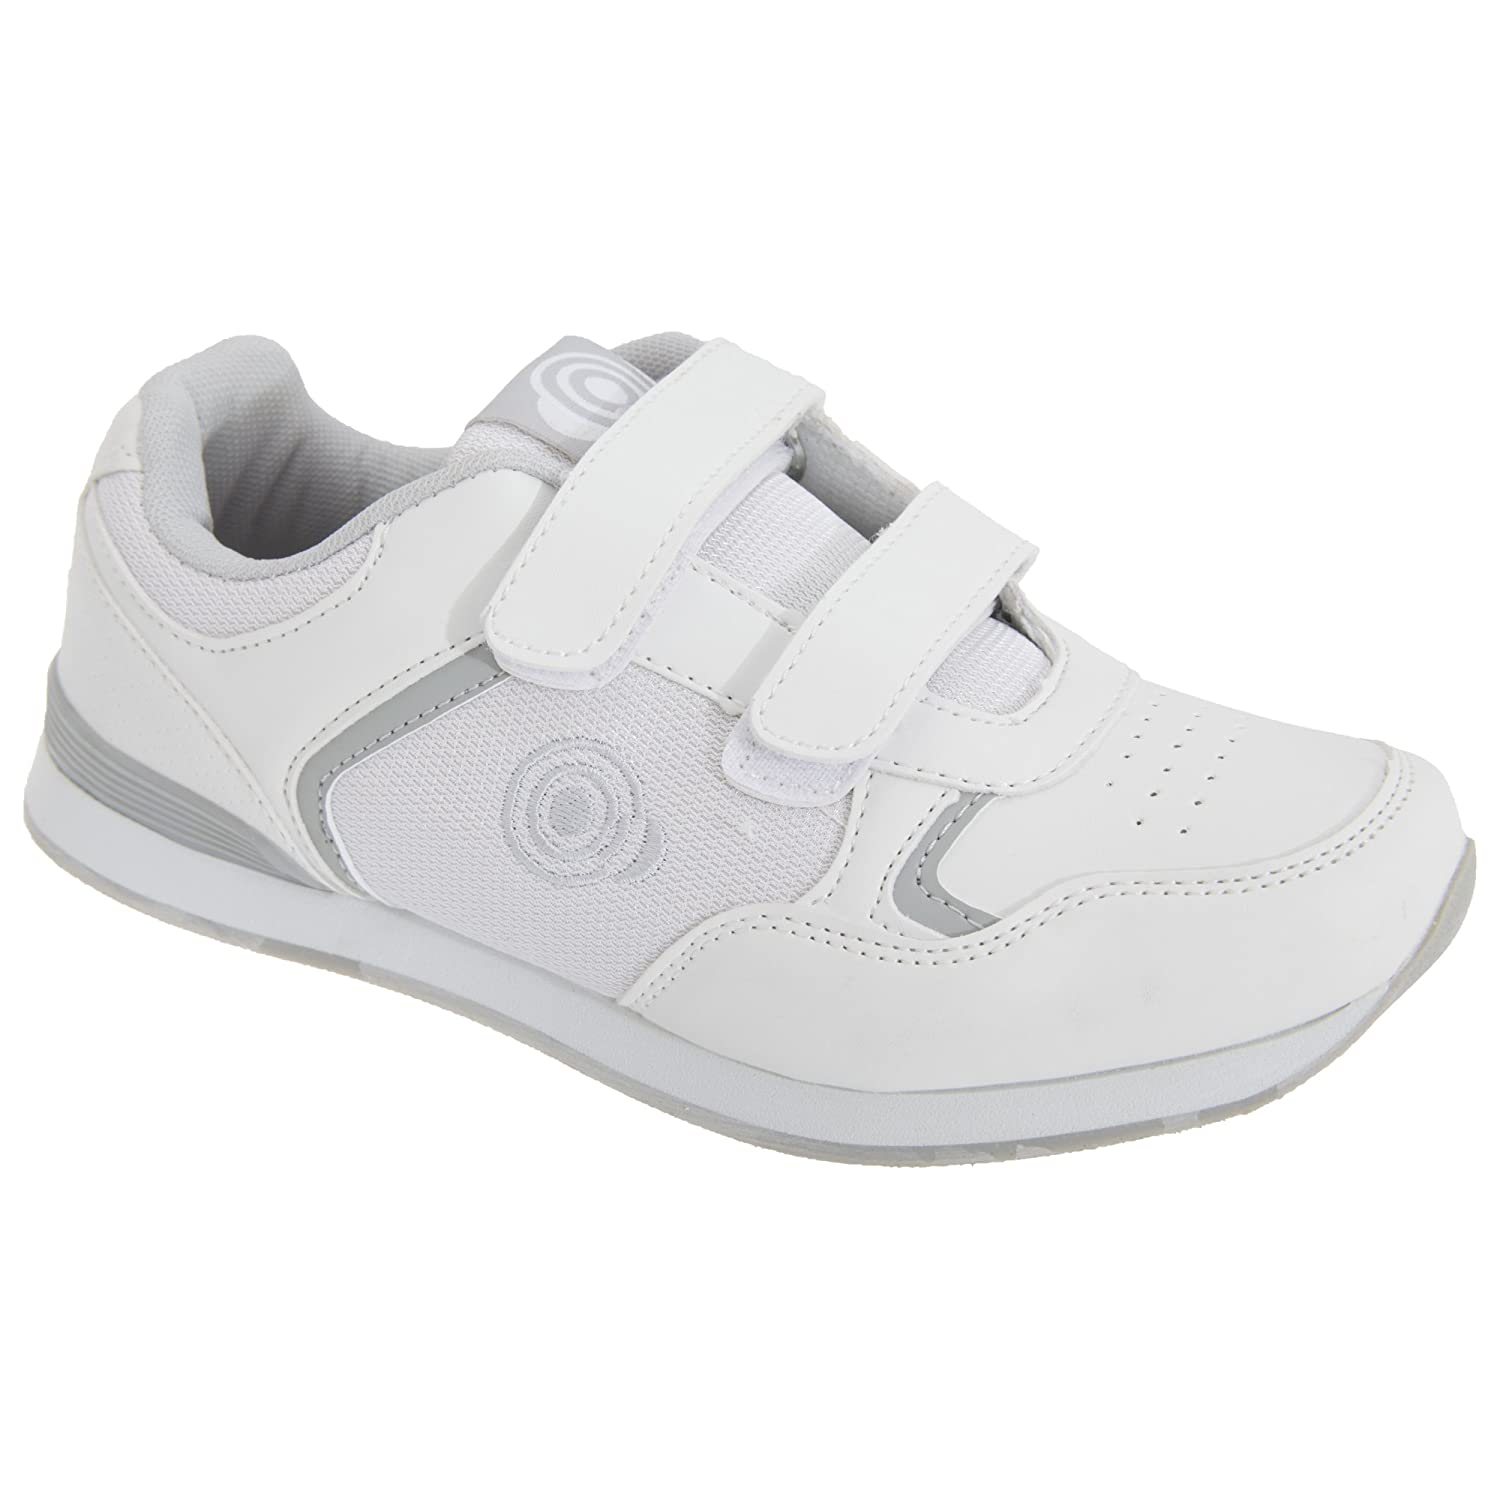 Dek Womens/Ladies Lady Skipper Touch Fastening Trainer-Style Bowling Shoes